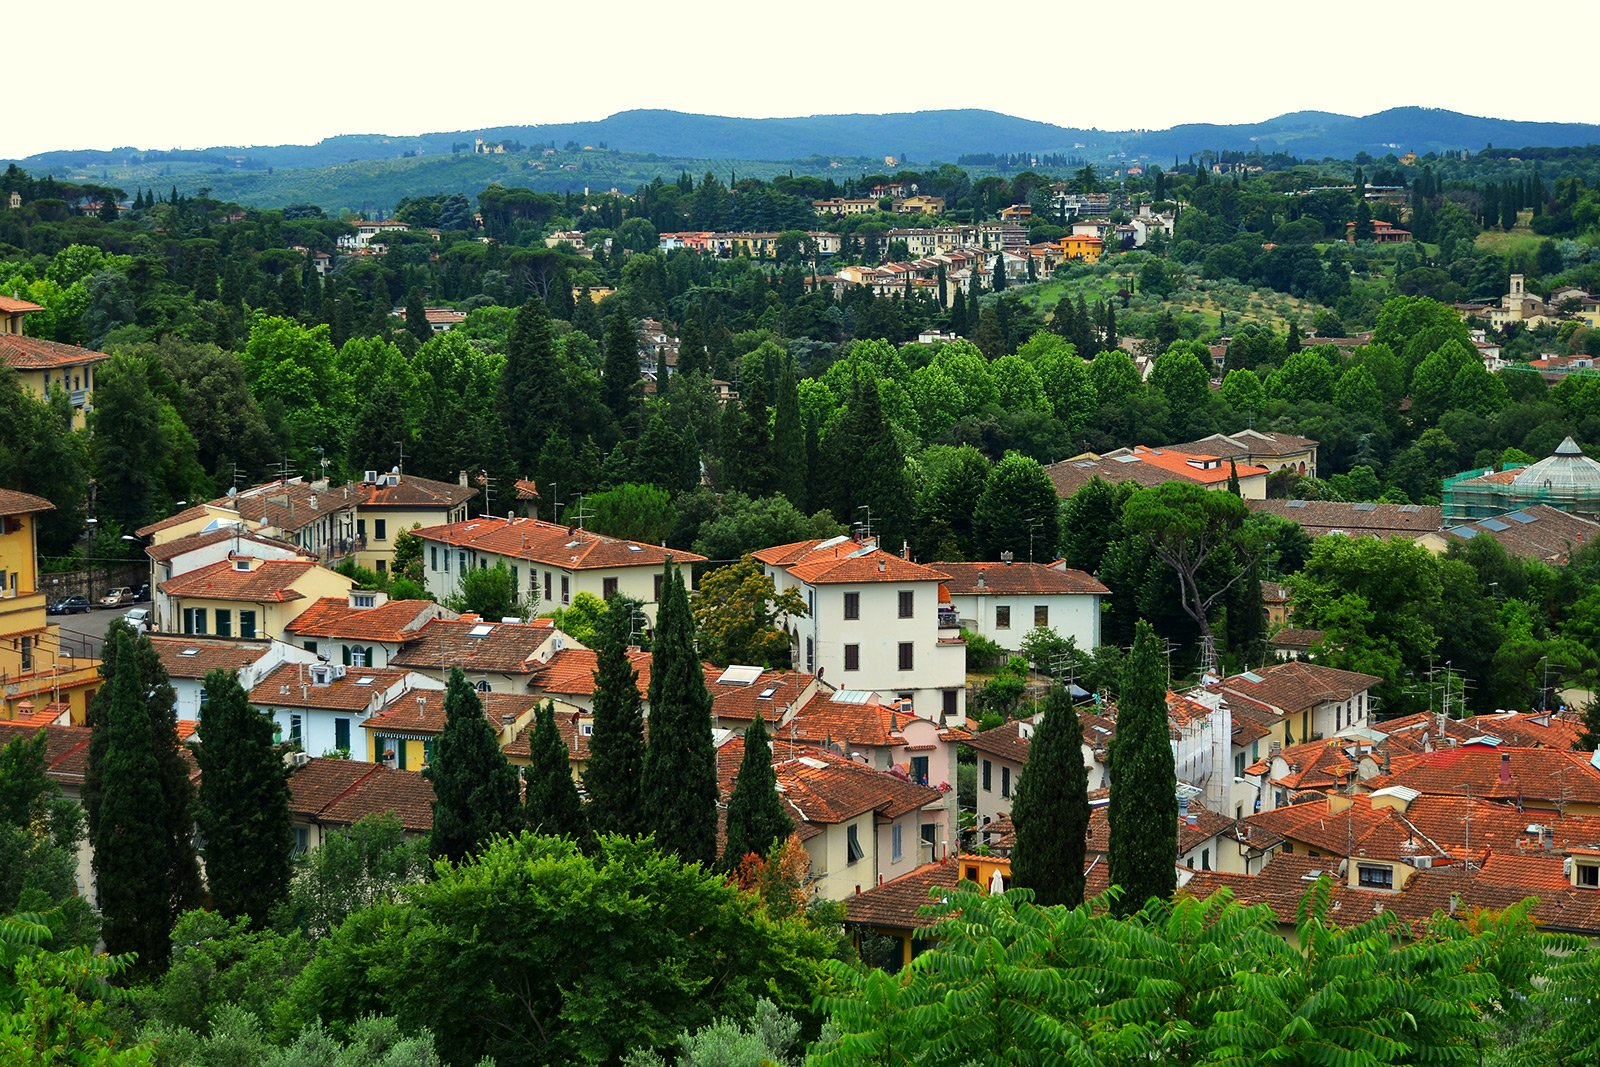 How to see the panorama of the city from the Boboli Gardens in Florence